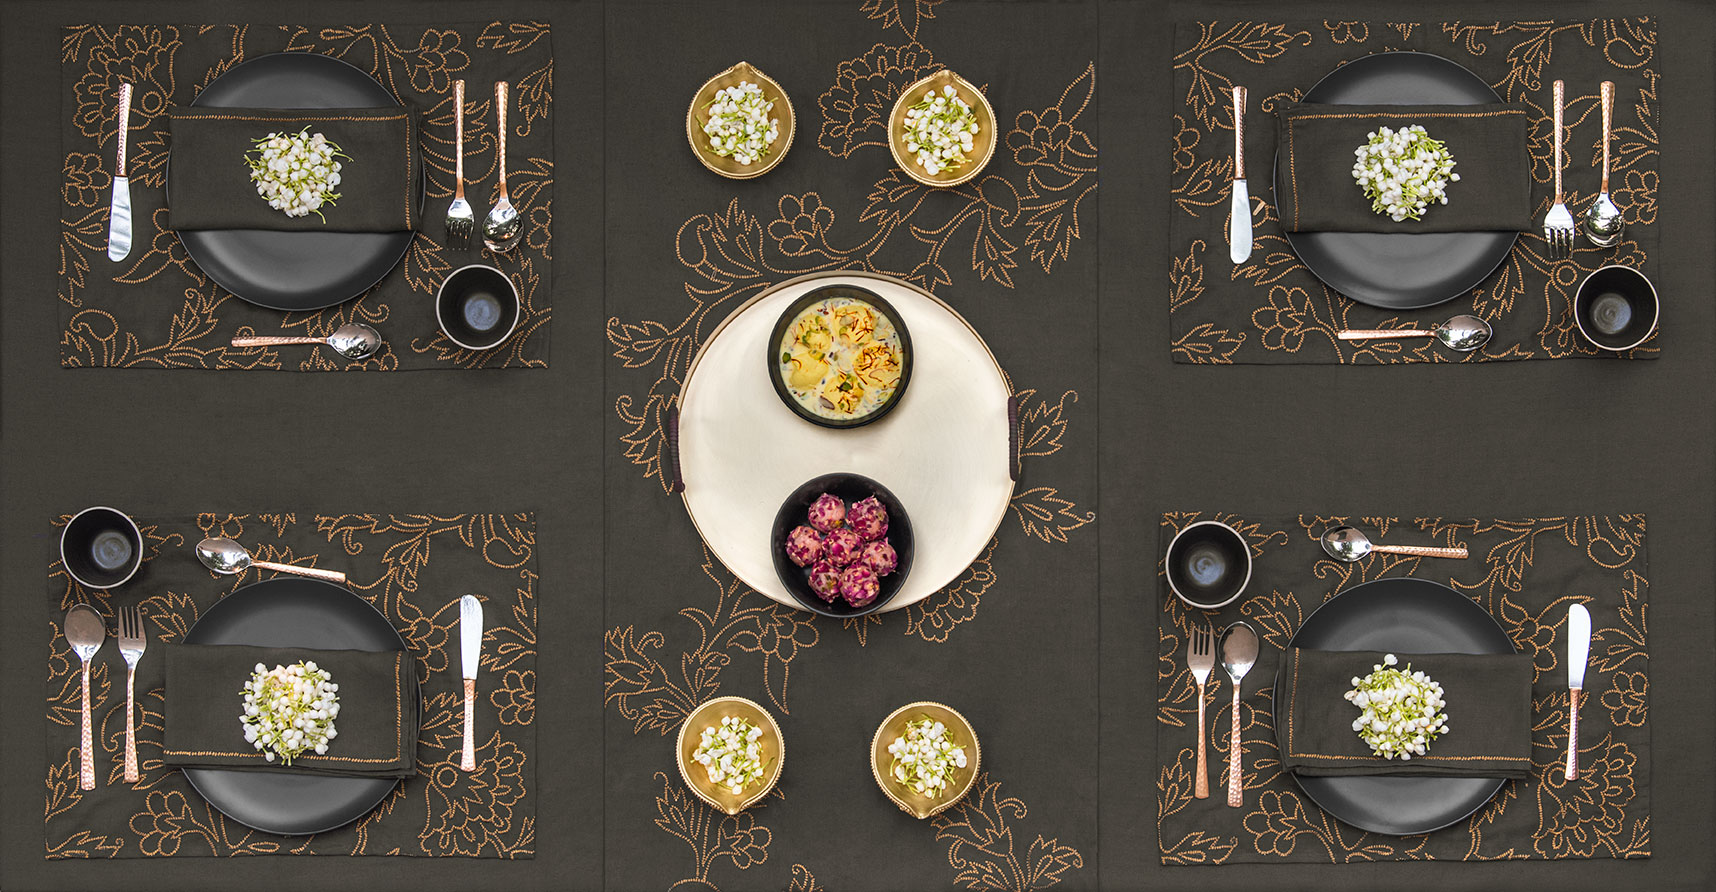 nomad-india-festive-table-charcoal-1